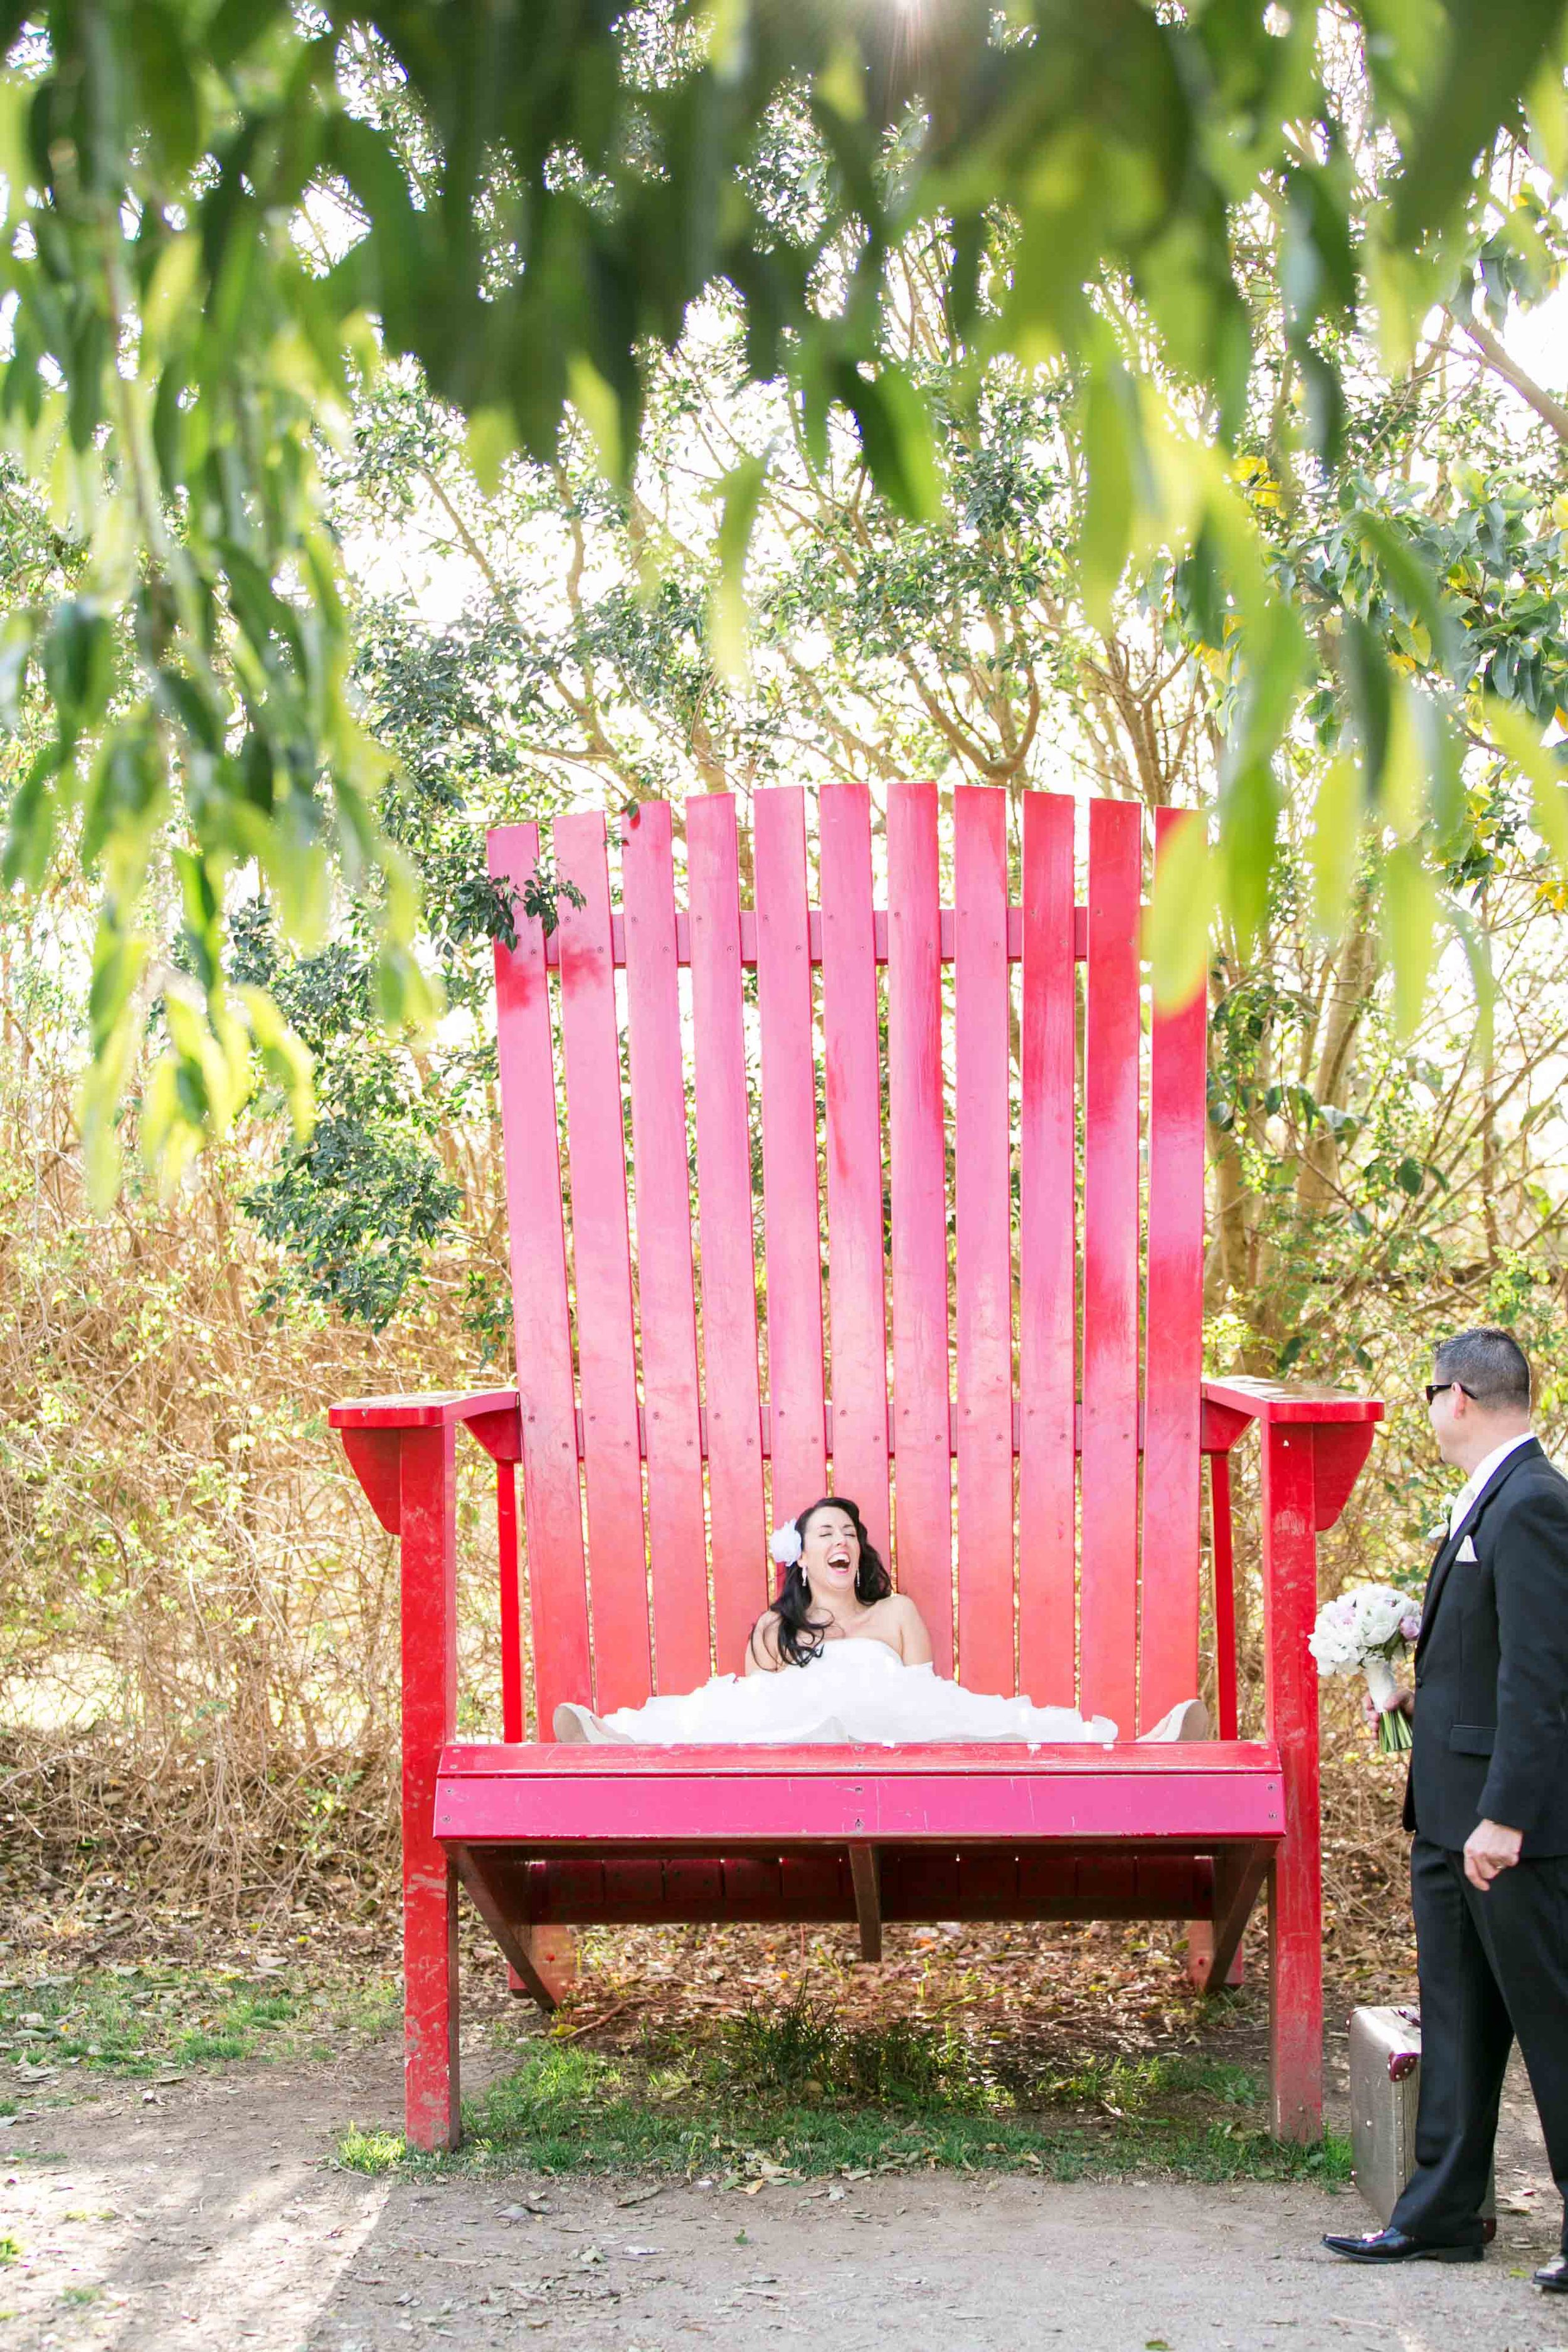 Lee and Rick wedding Hunter Valley Gardens Chair